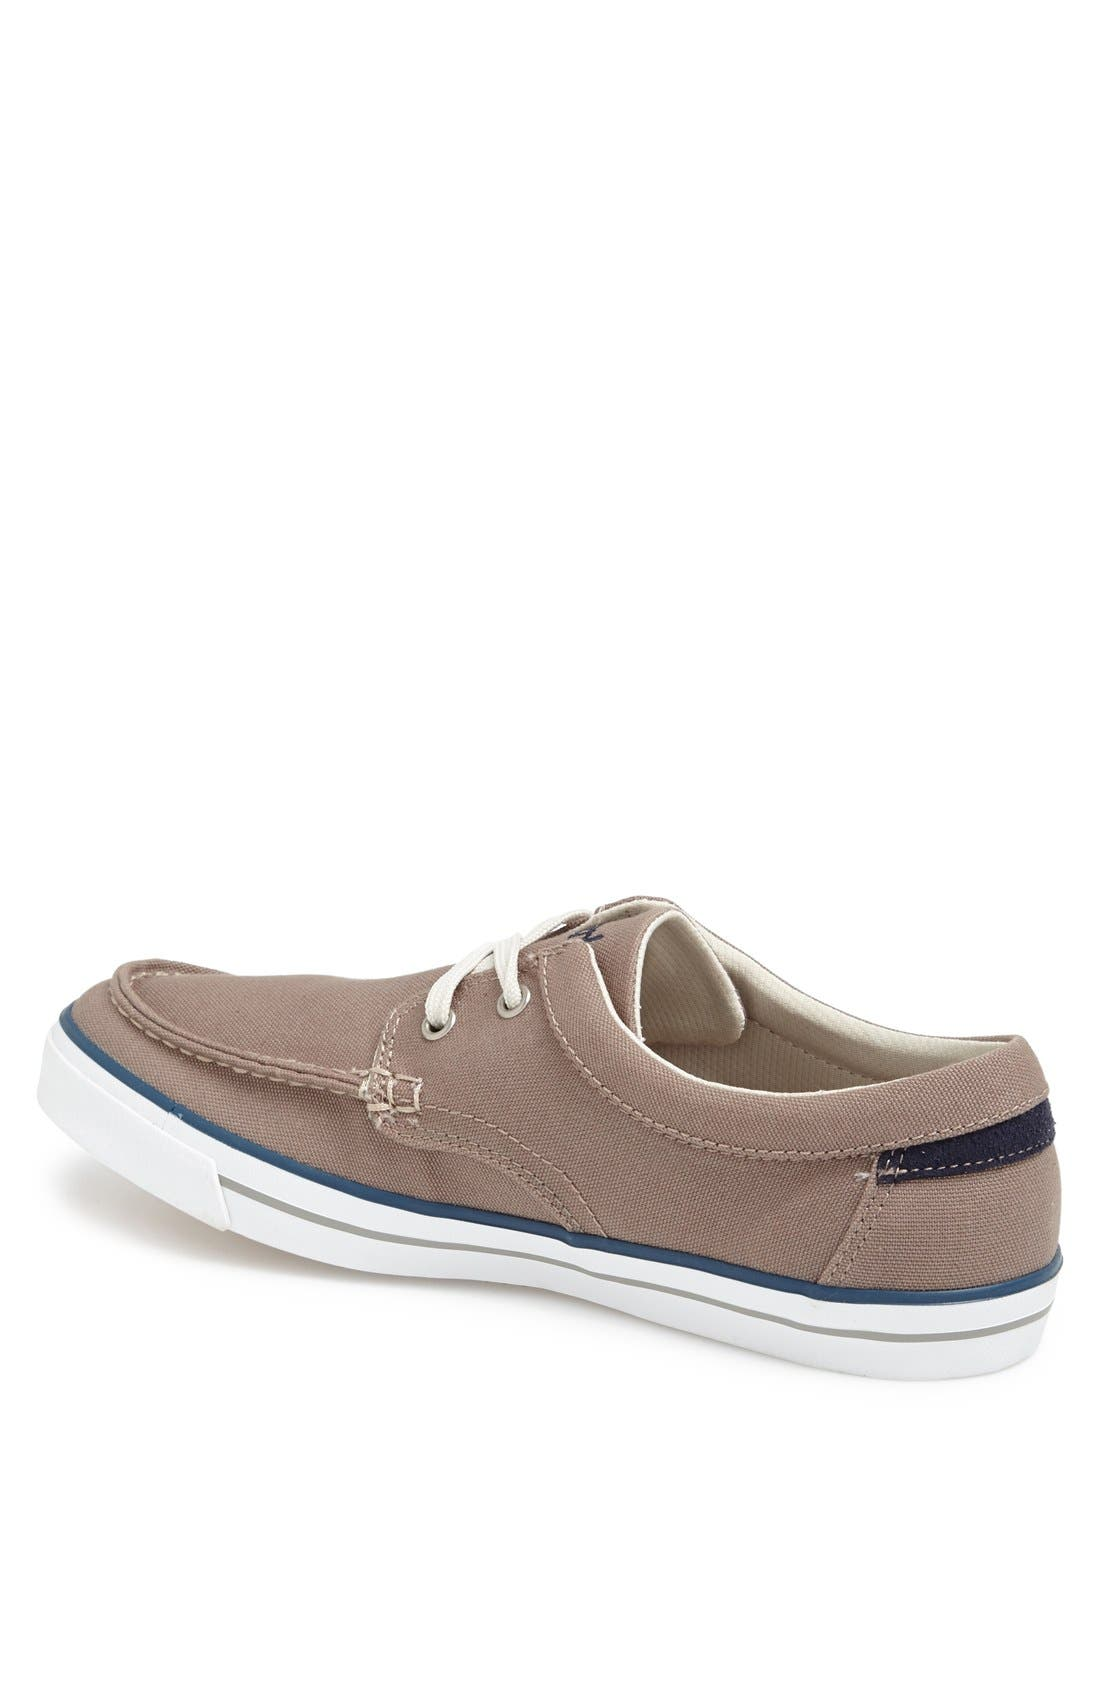 Alternate Image 2  - Timberland Earthkeepers® 'Hookset' Boat Shoe (Men)